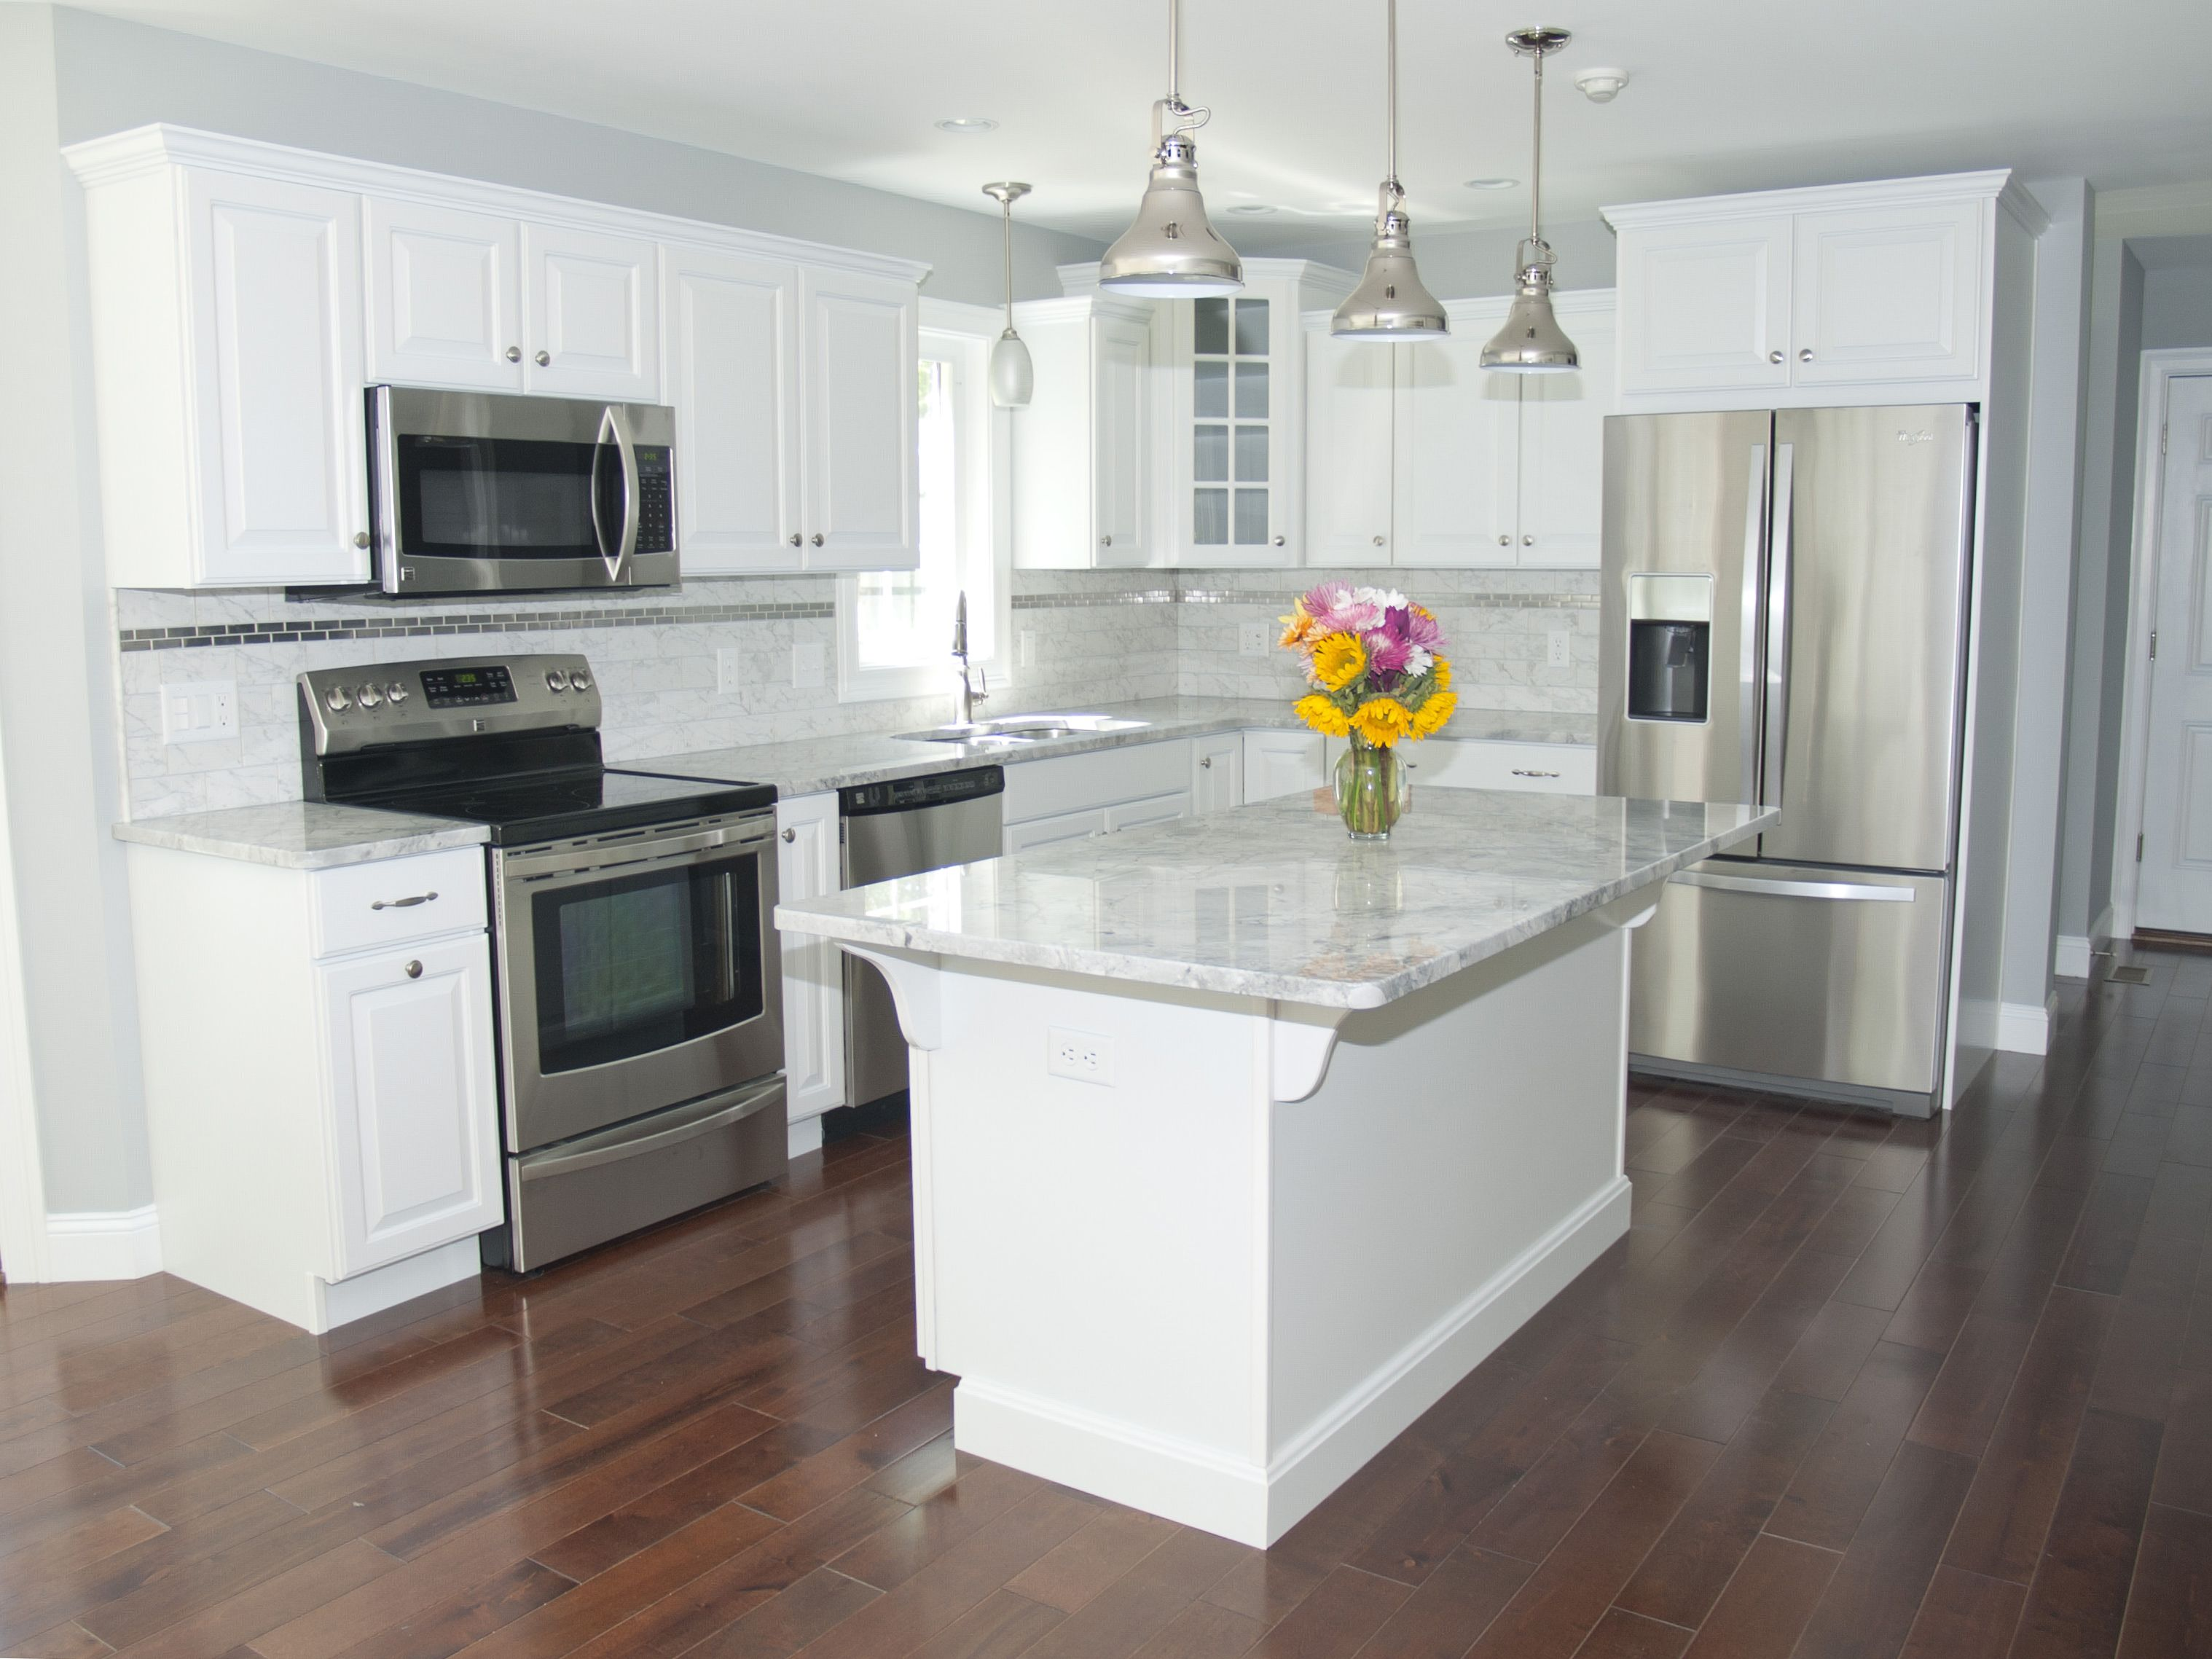 kitchen white cabinets stainless appliances photo - 7